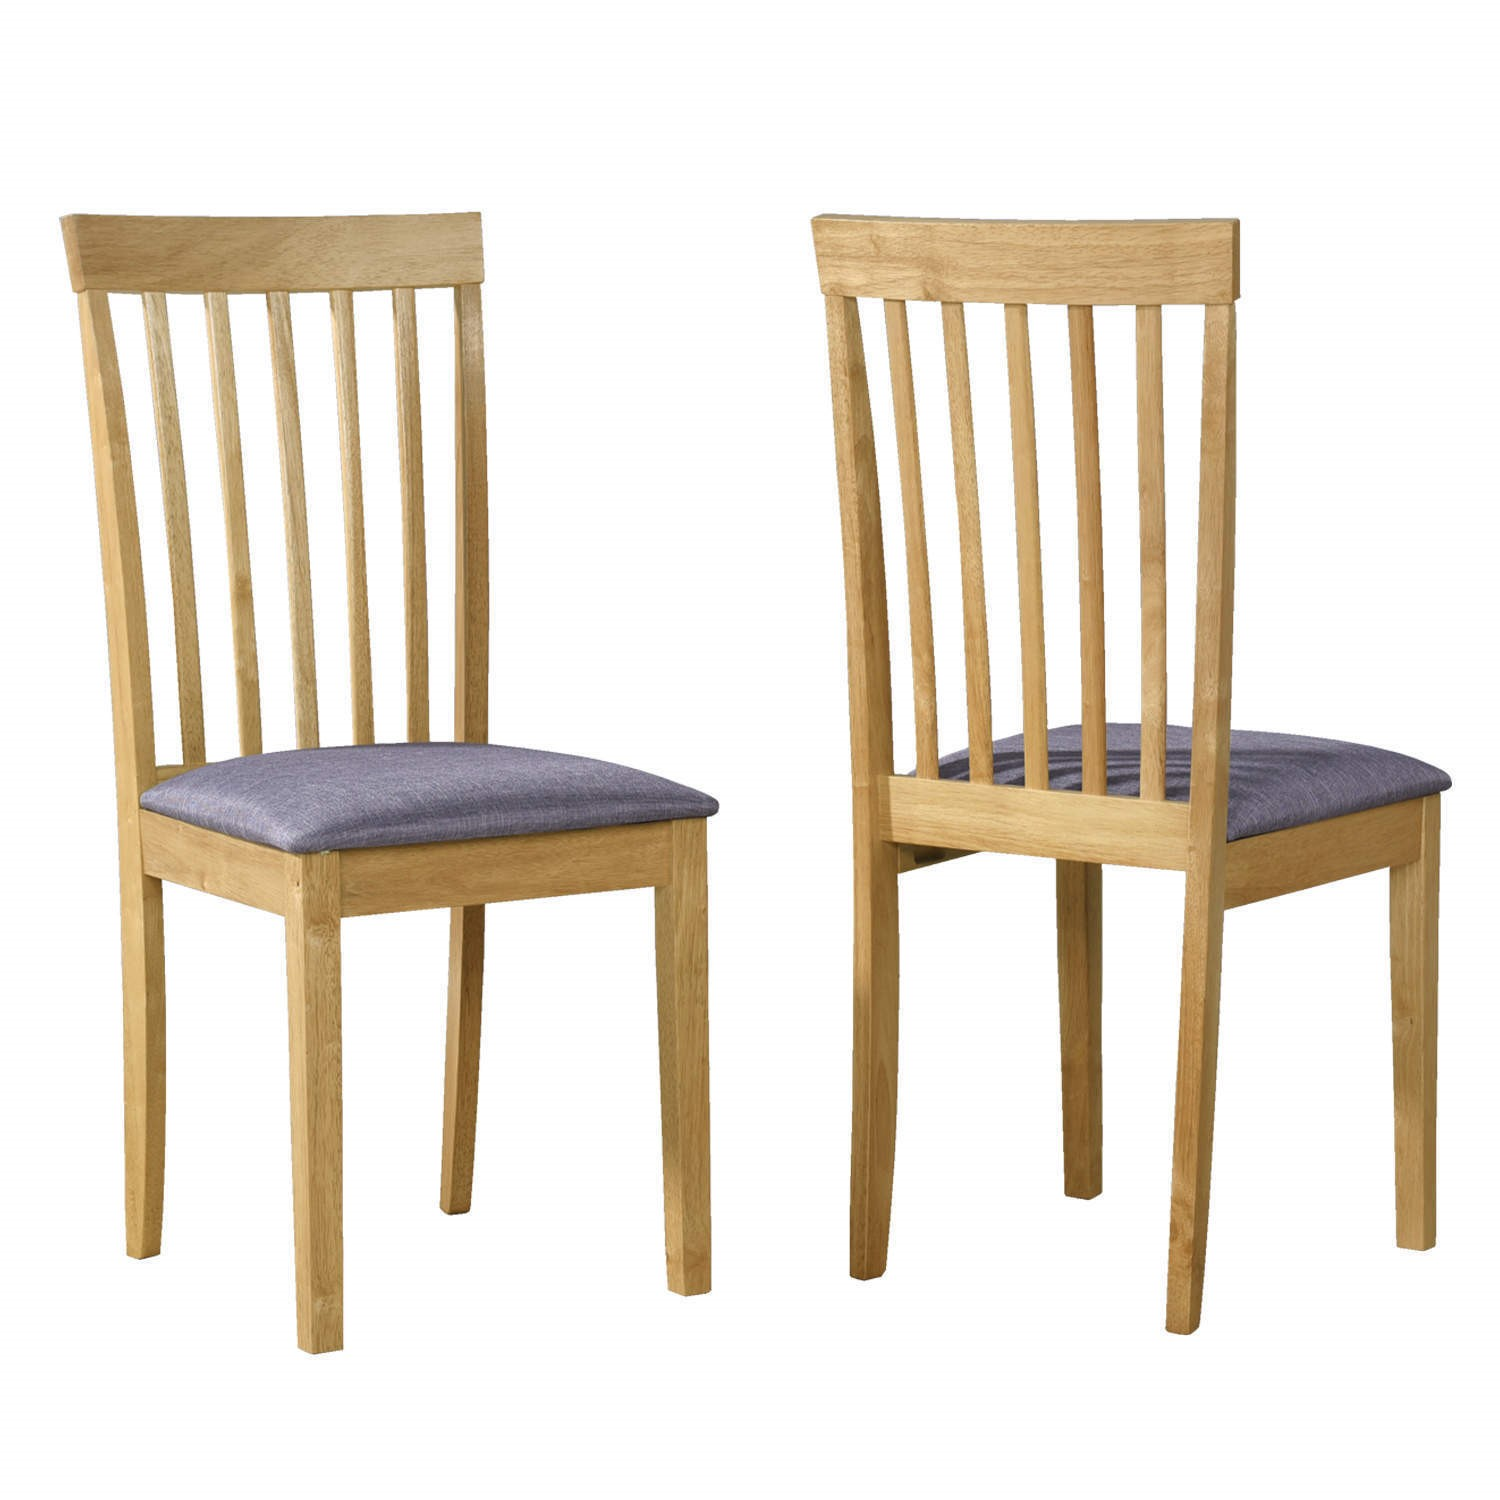 Pair Of Oak Dining Chairs Classic Slatted High Back With